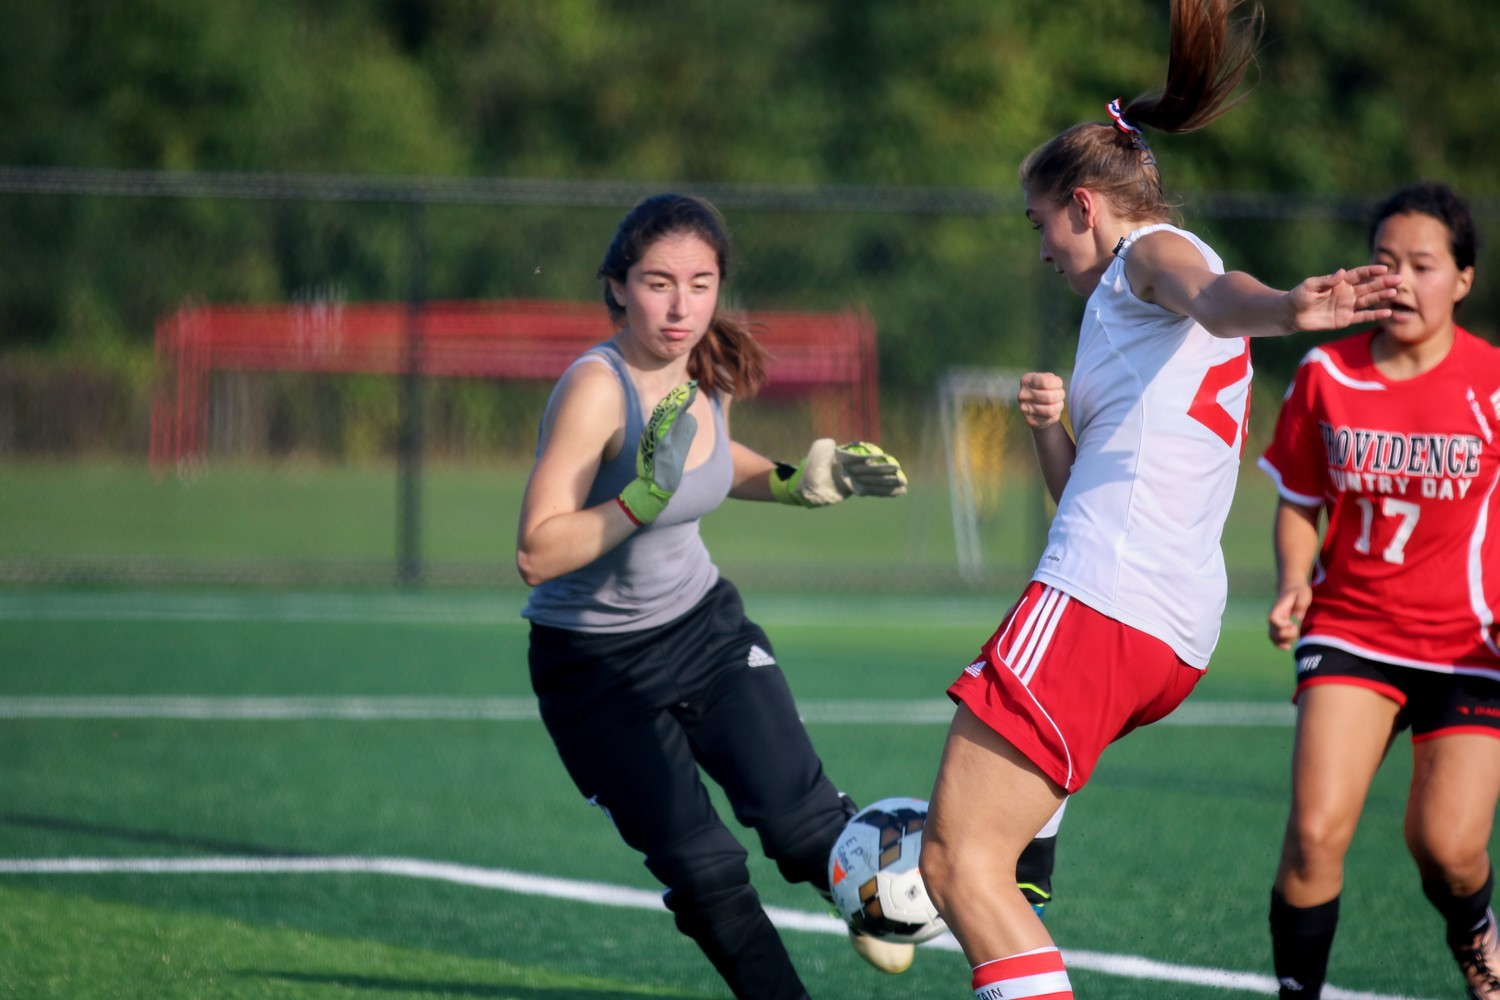 Grace Abrams scoring goal for the Townies against PCD. Photo Paul Tumidajski.